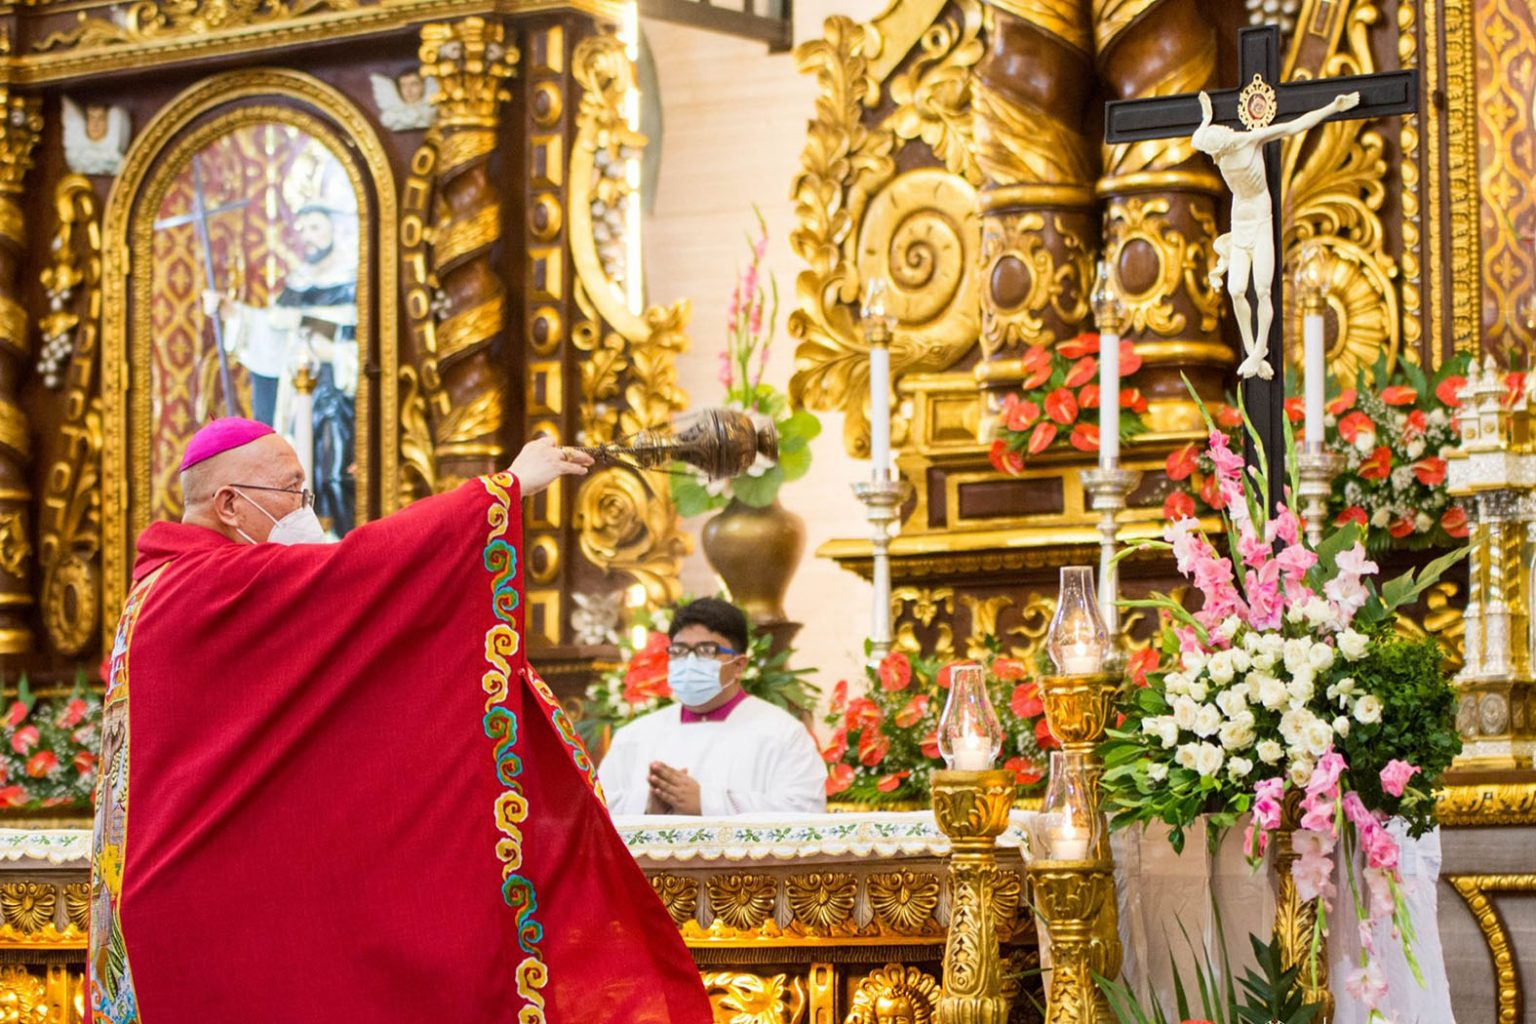 Philippines now has 17 minor basilicas